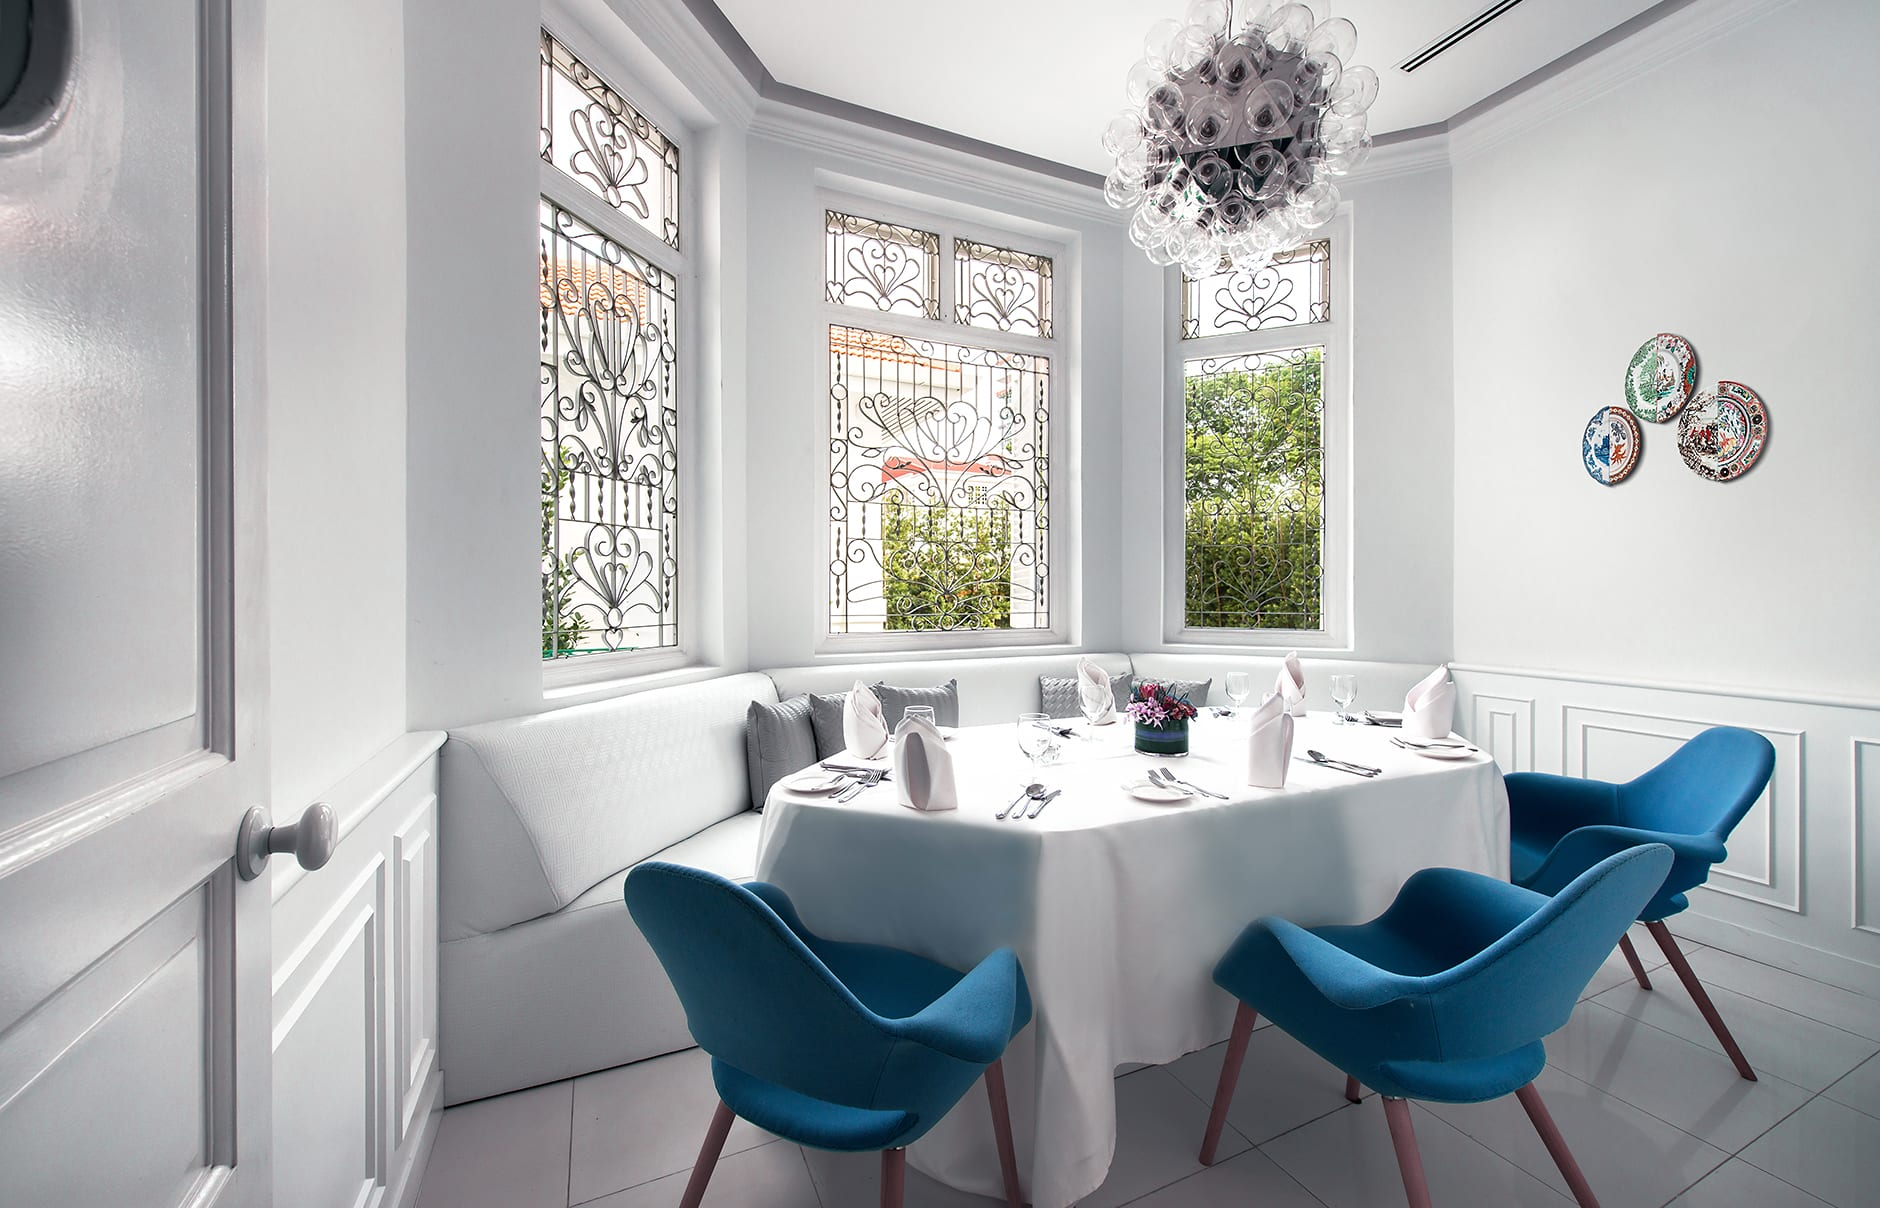 Dining Room. Macalister Mansion, Georgetown, Penang, Malaysia. © Macalister Mansion